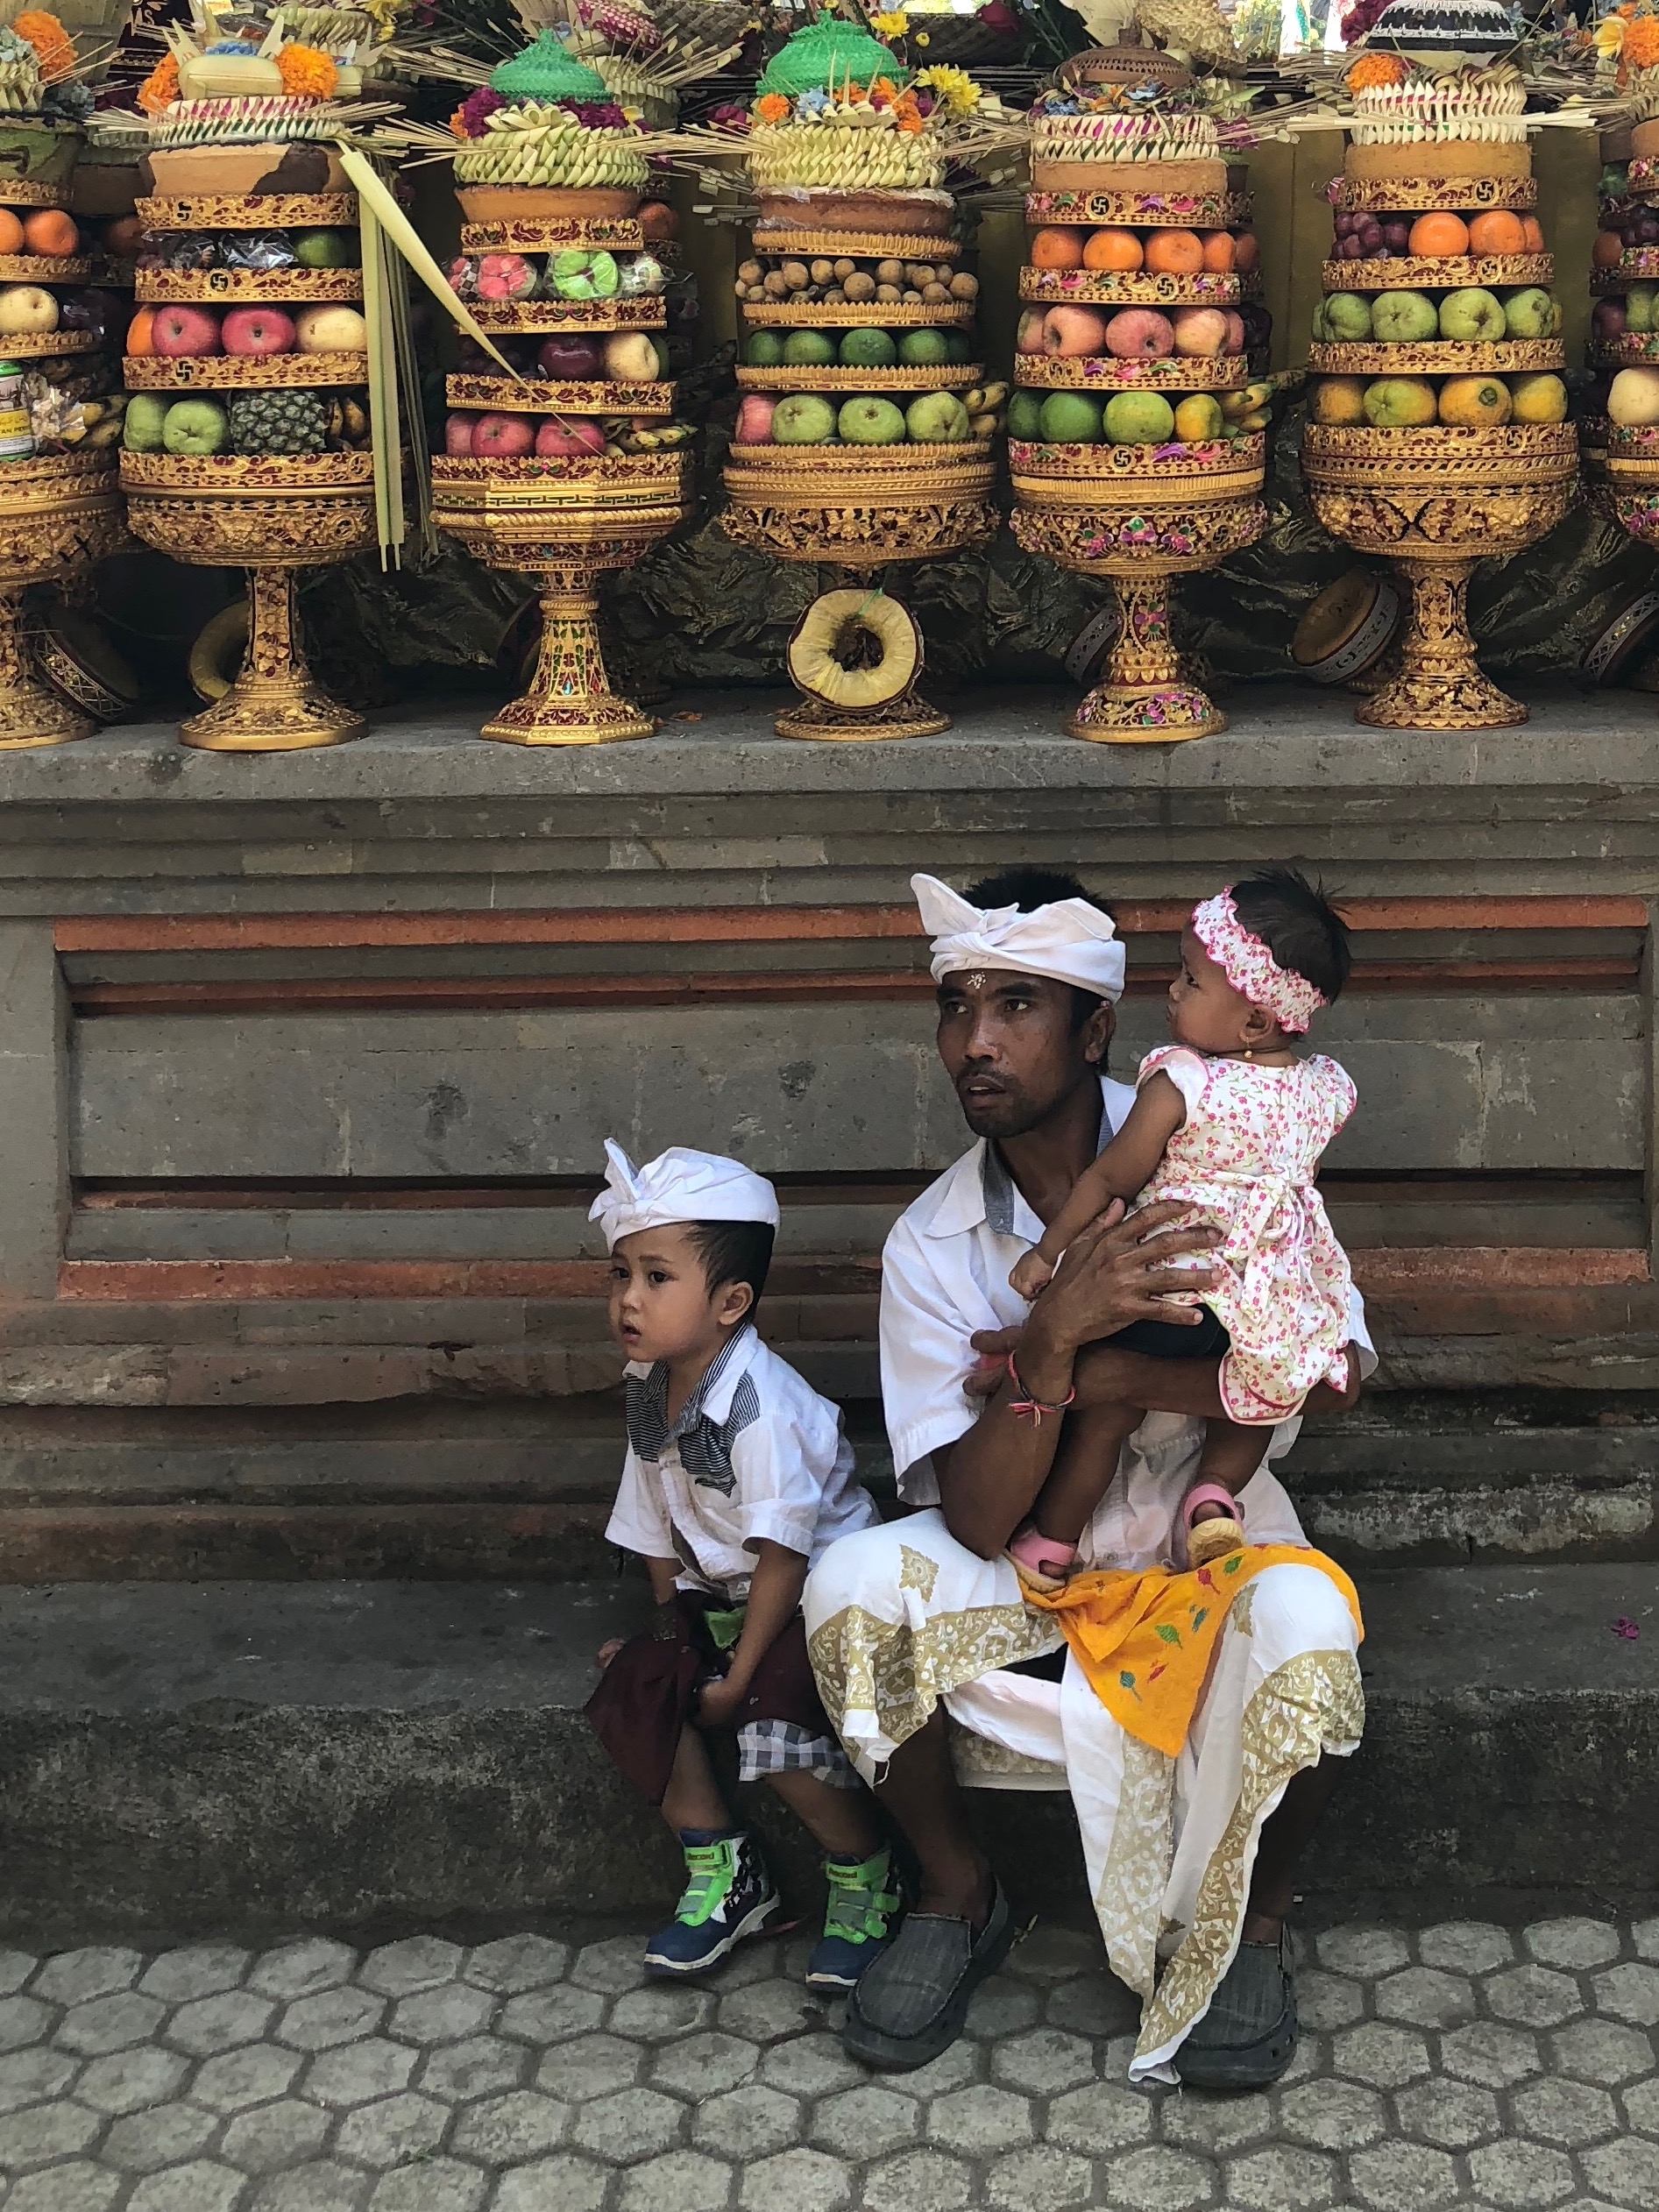 A man and his children pause under the elaborate temple offerings